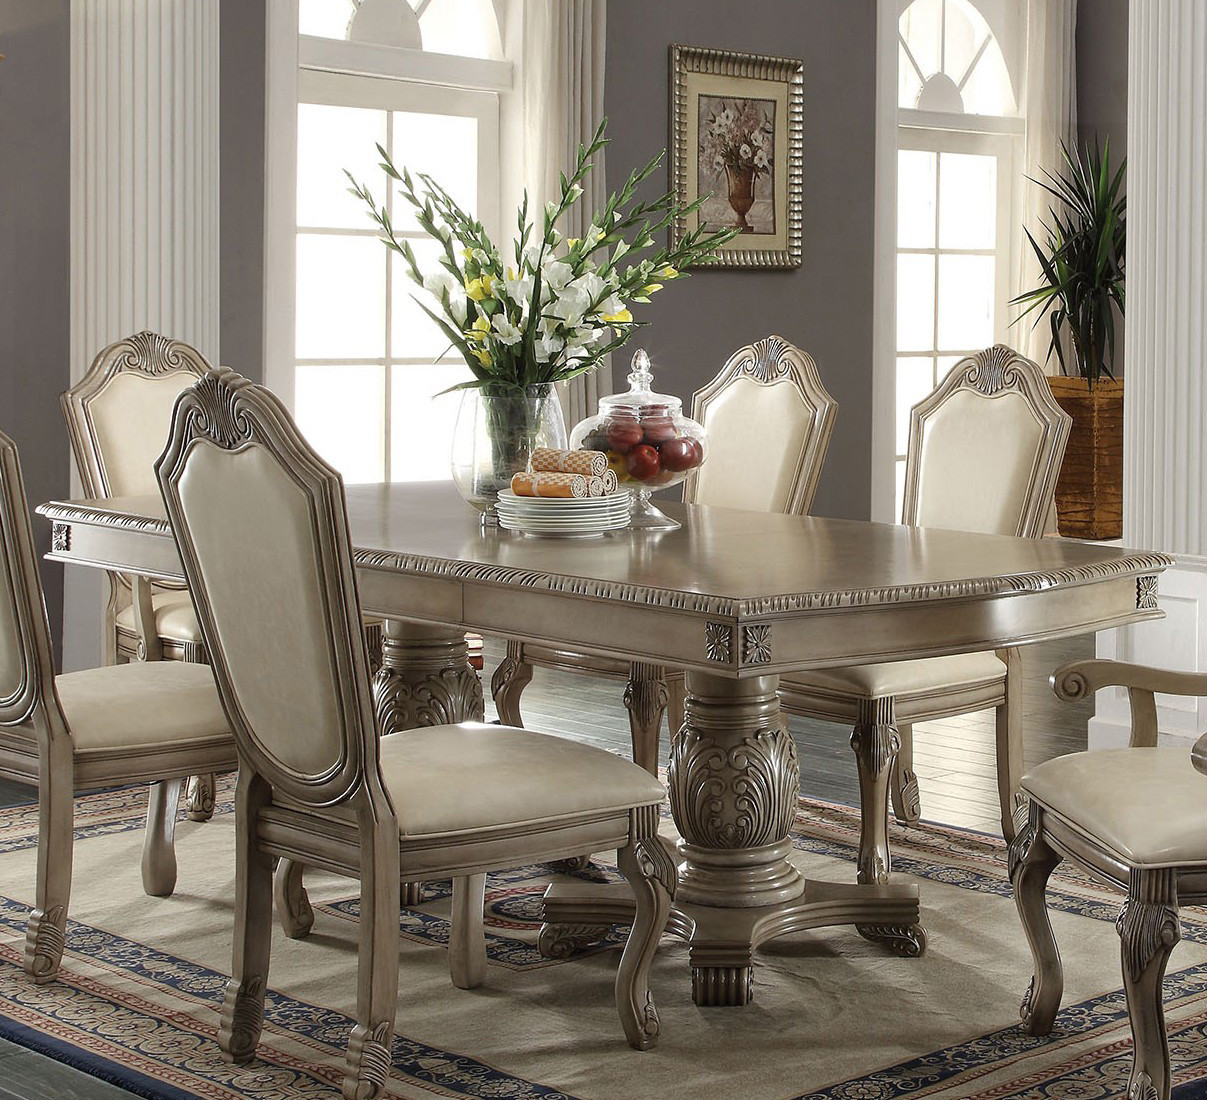 Antique White Pedestal Dining Table